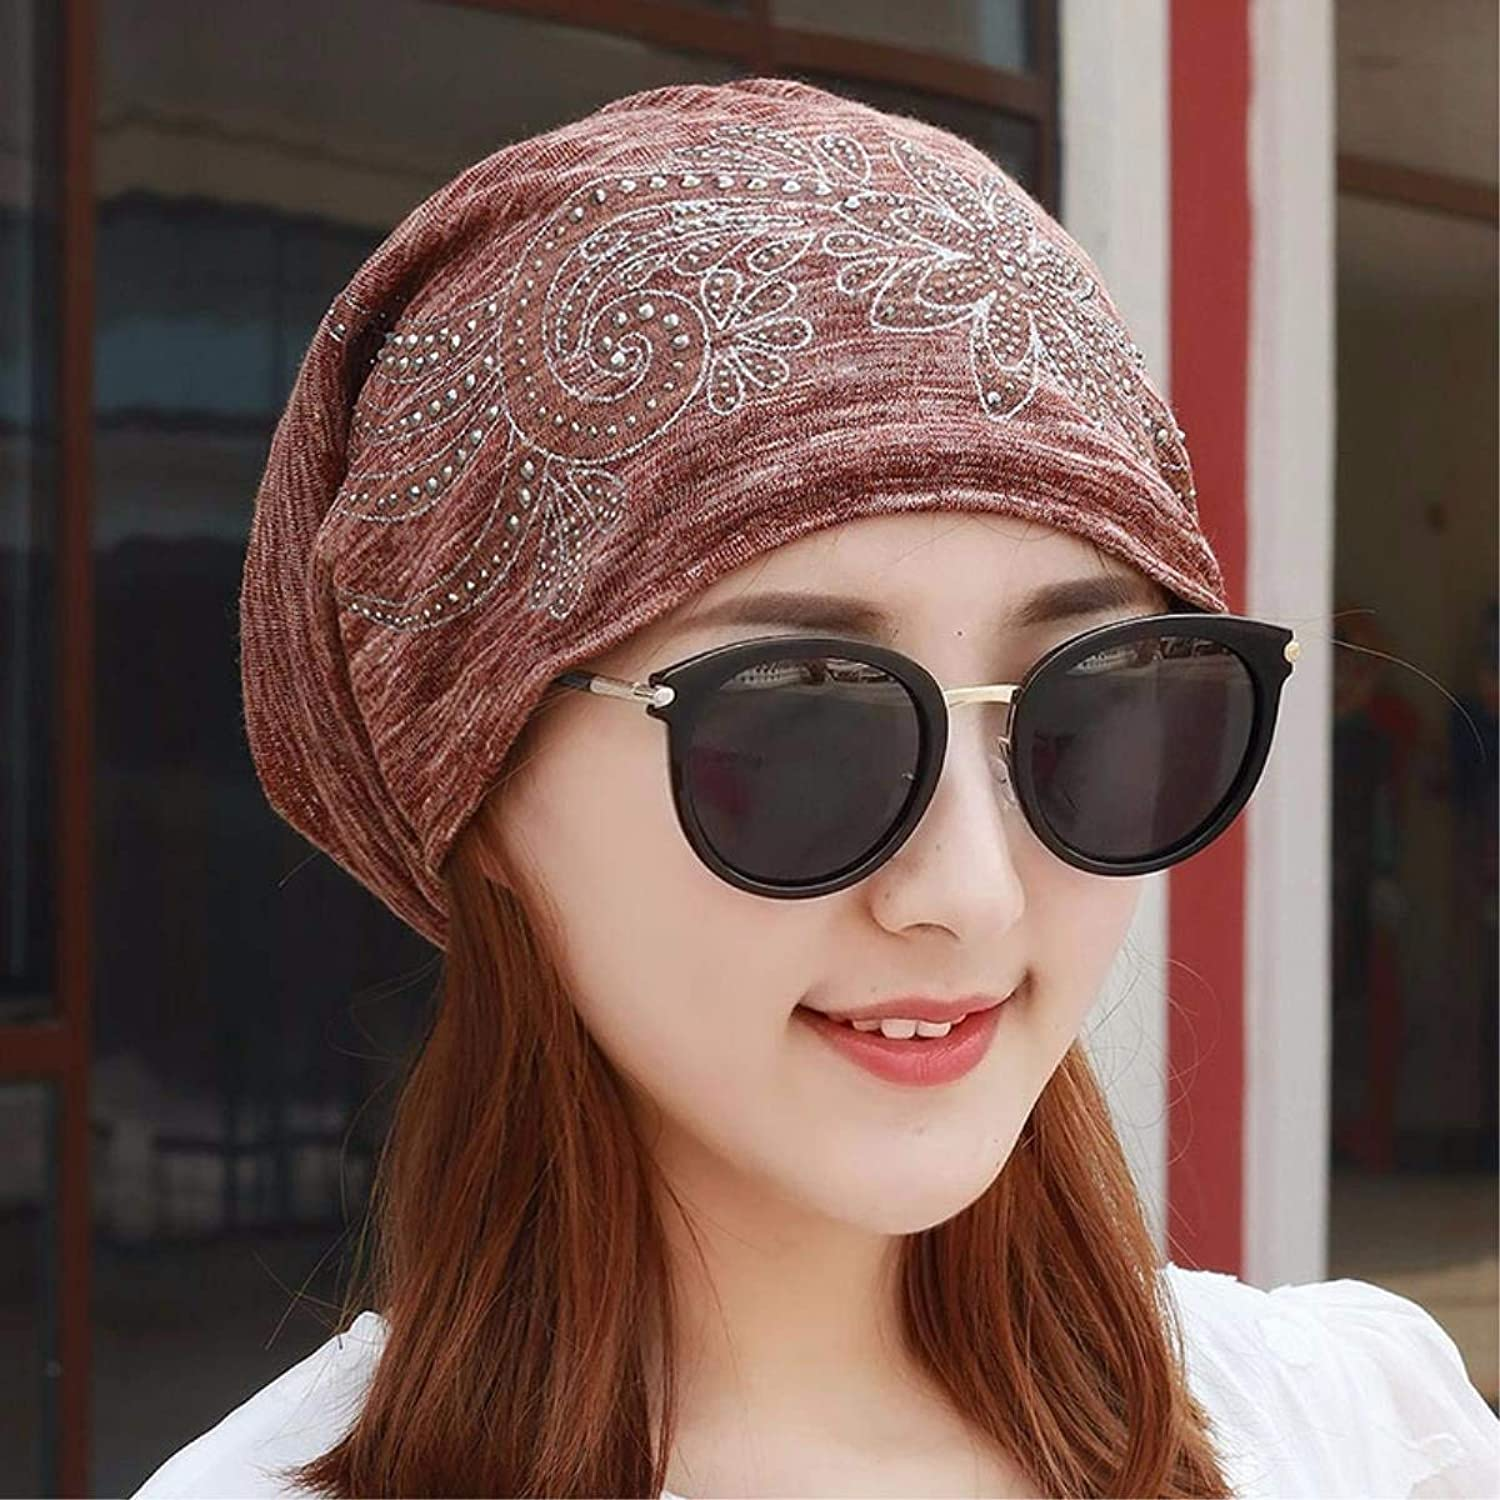 Dianye Hat the girl thin scarf, cap spring and summer pregnant storehouse cap cap cap cap airconditioned bedrooms